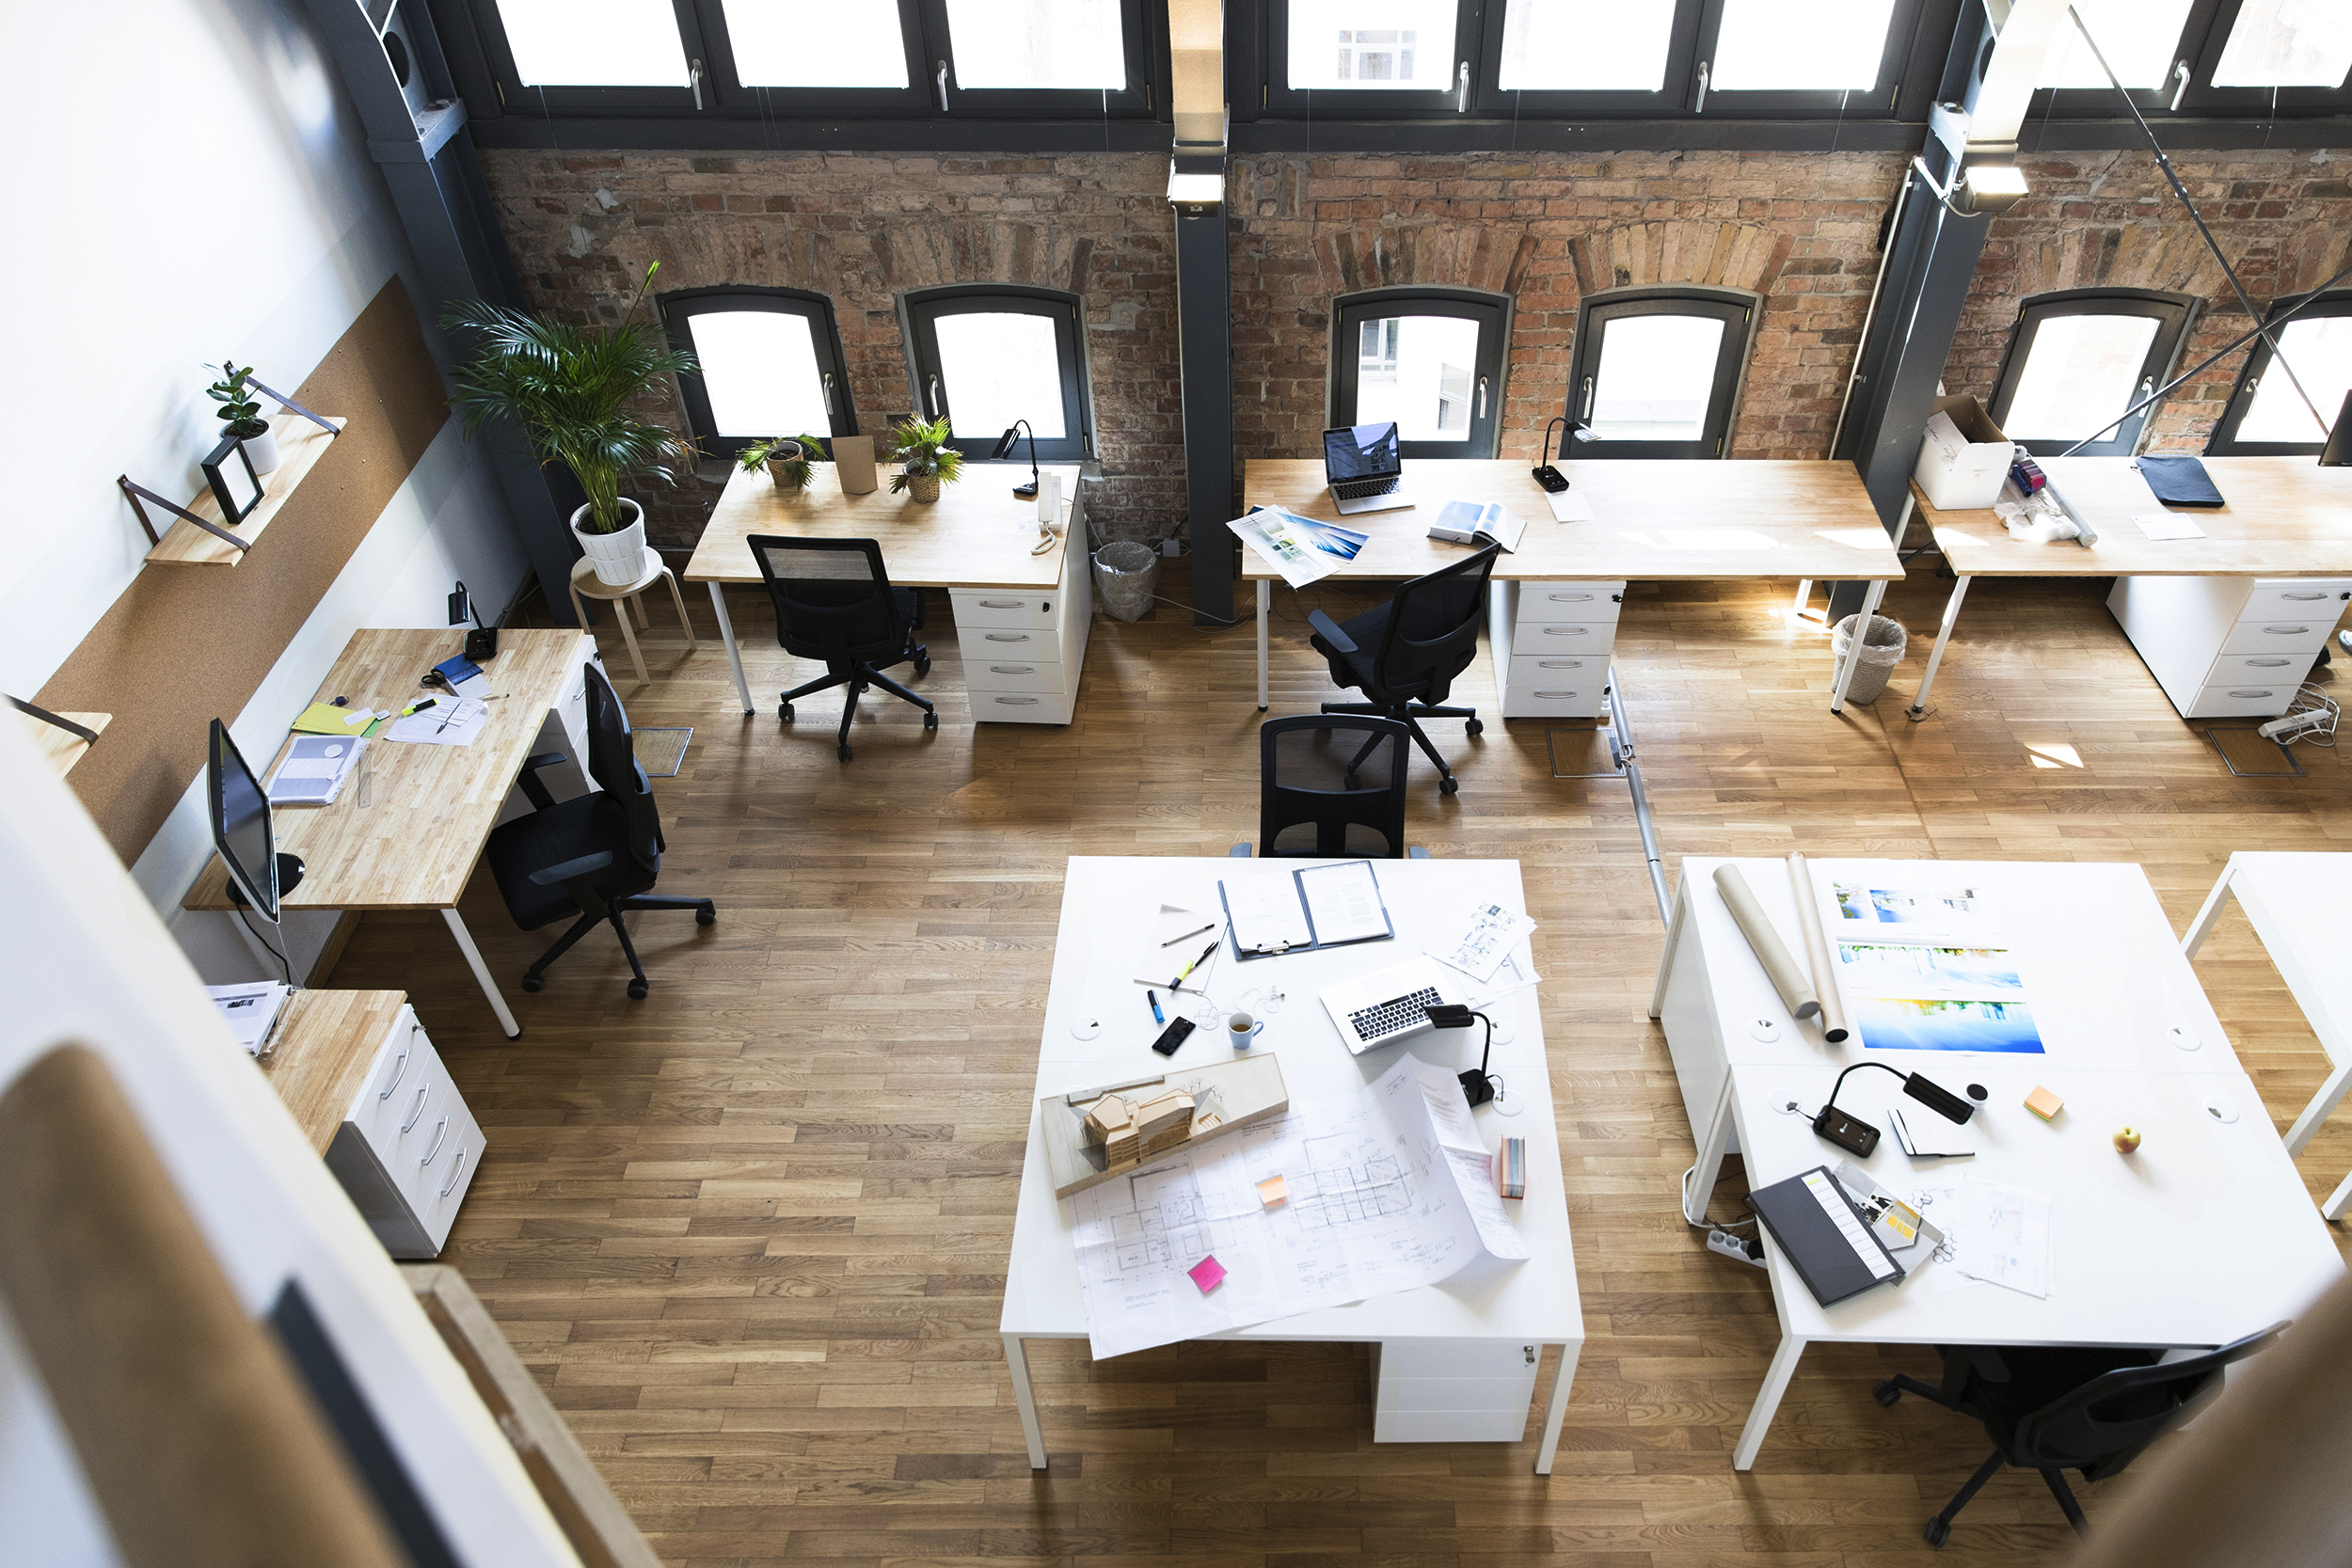 Discussion on this topic: Productivity is about finding space, productivity-is-about-finding-space/